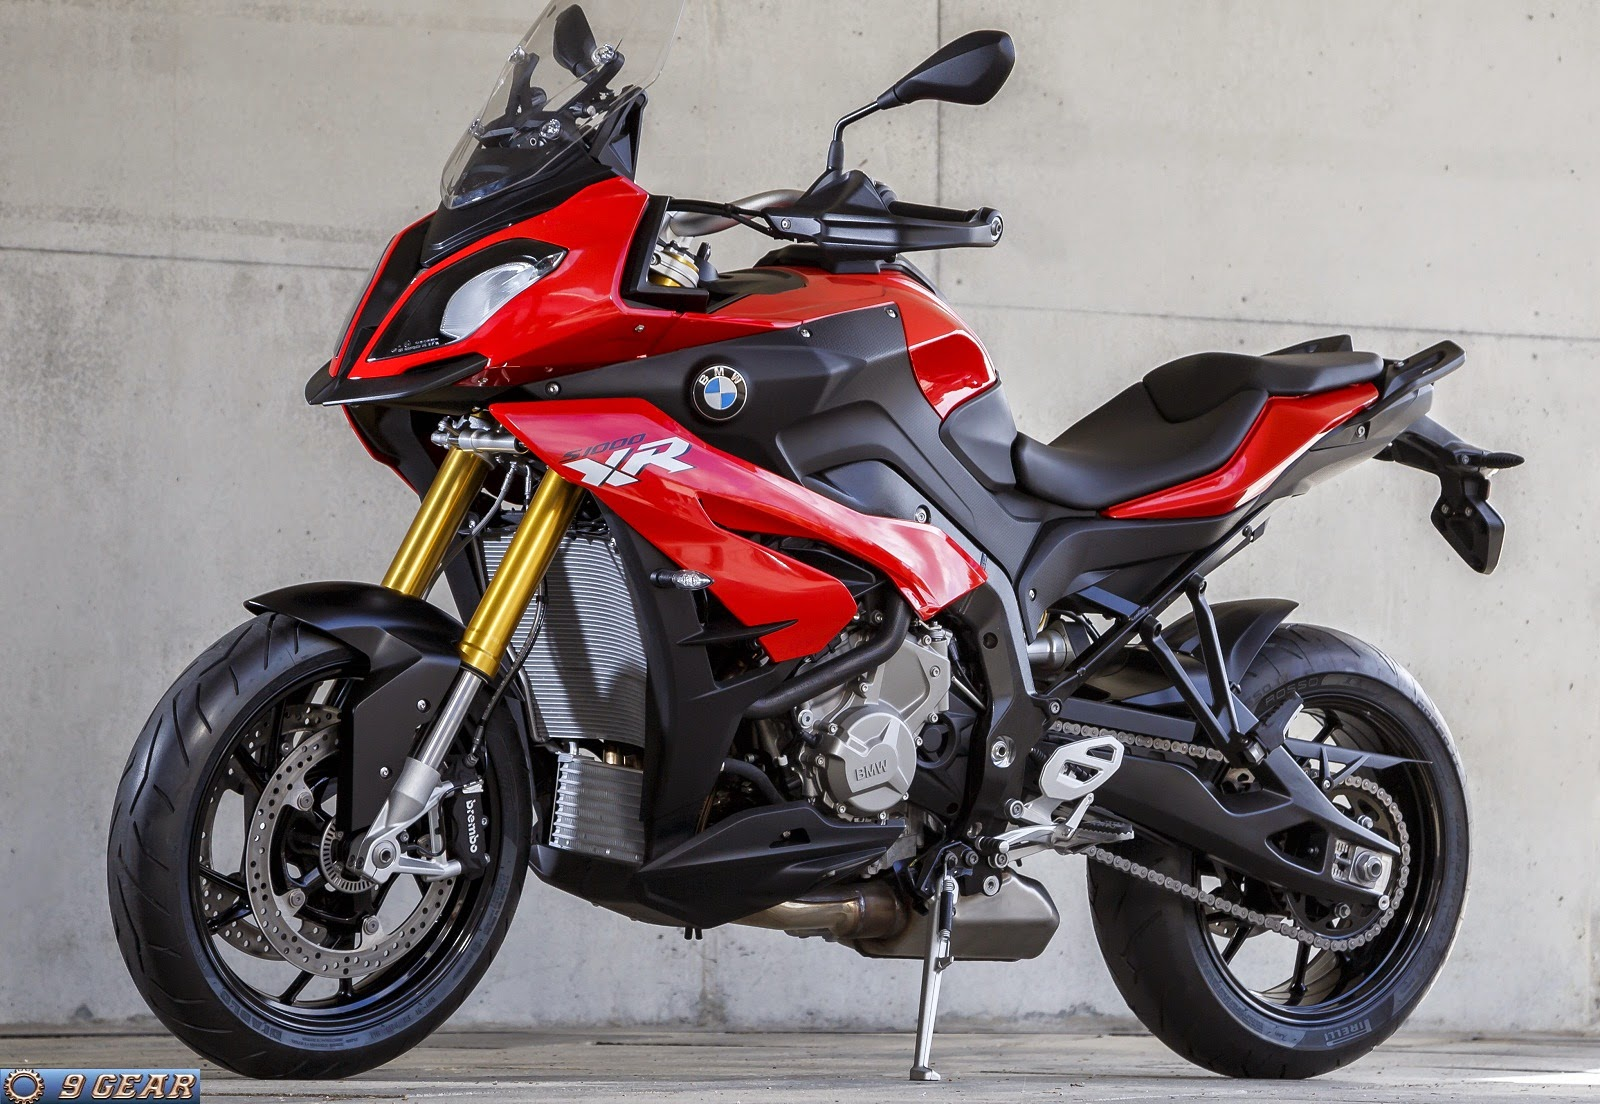 The New Bmw S 1000 Xr Motorcycle 2016 Car Reviews New